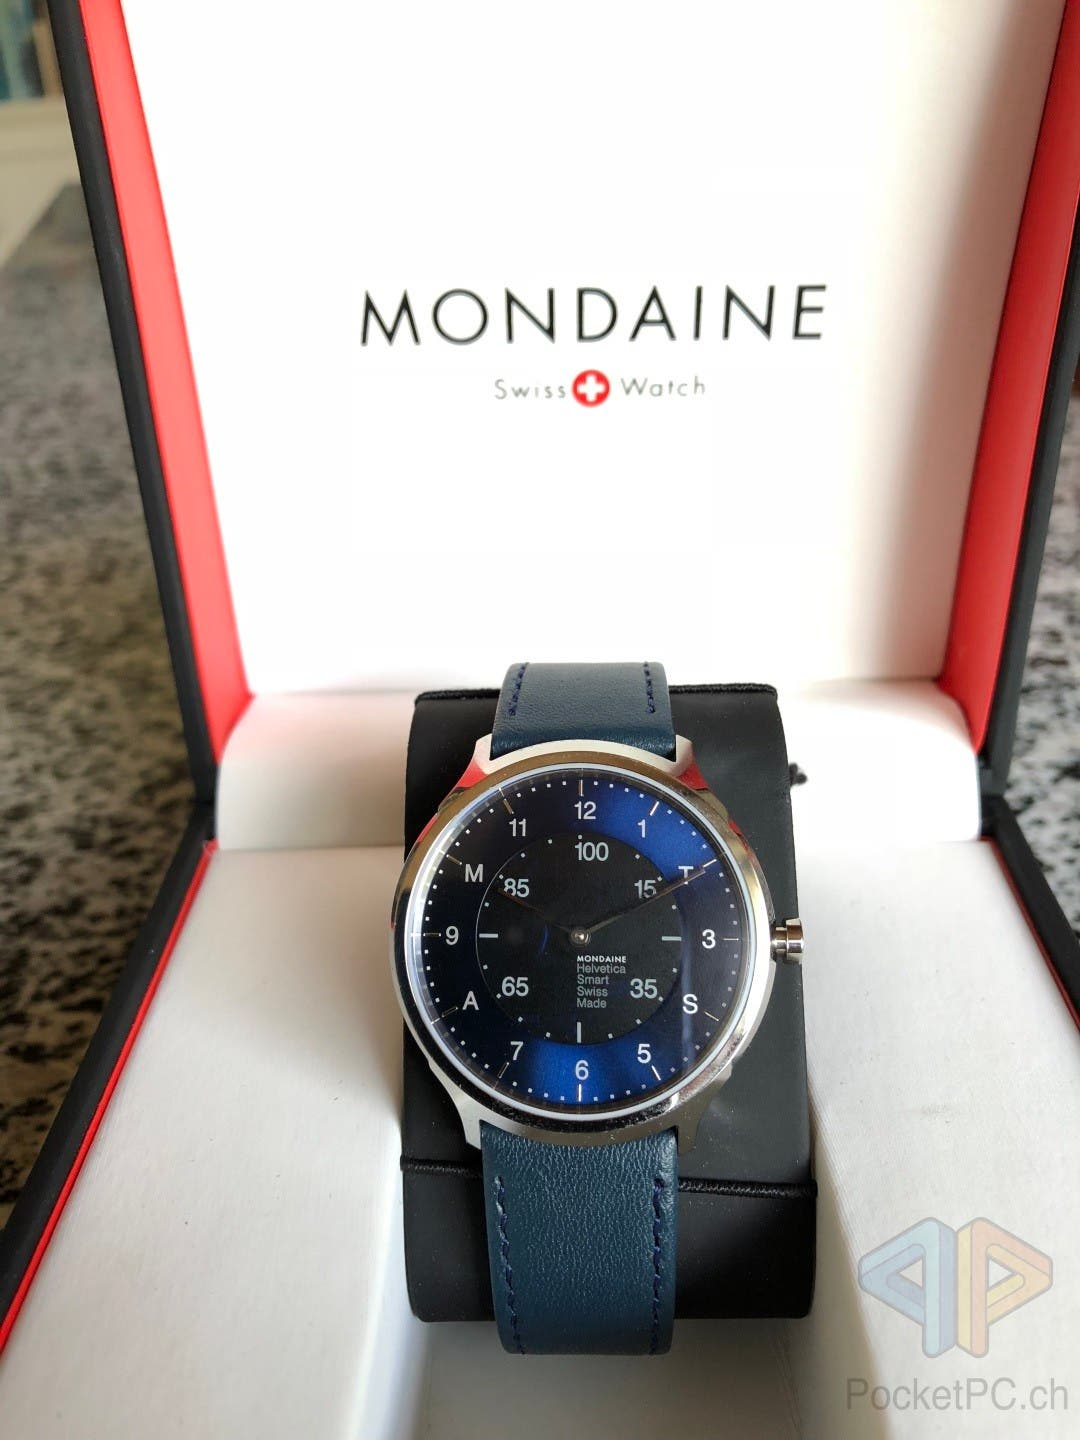 Mondaine Helvetica No1 Regular Smartwatch